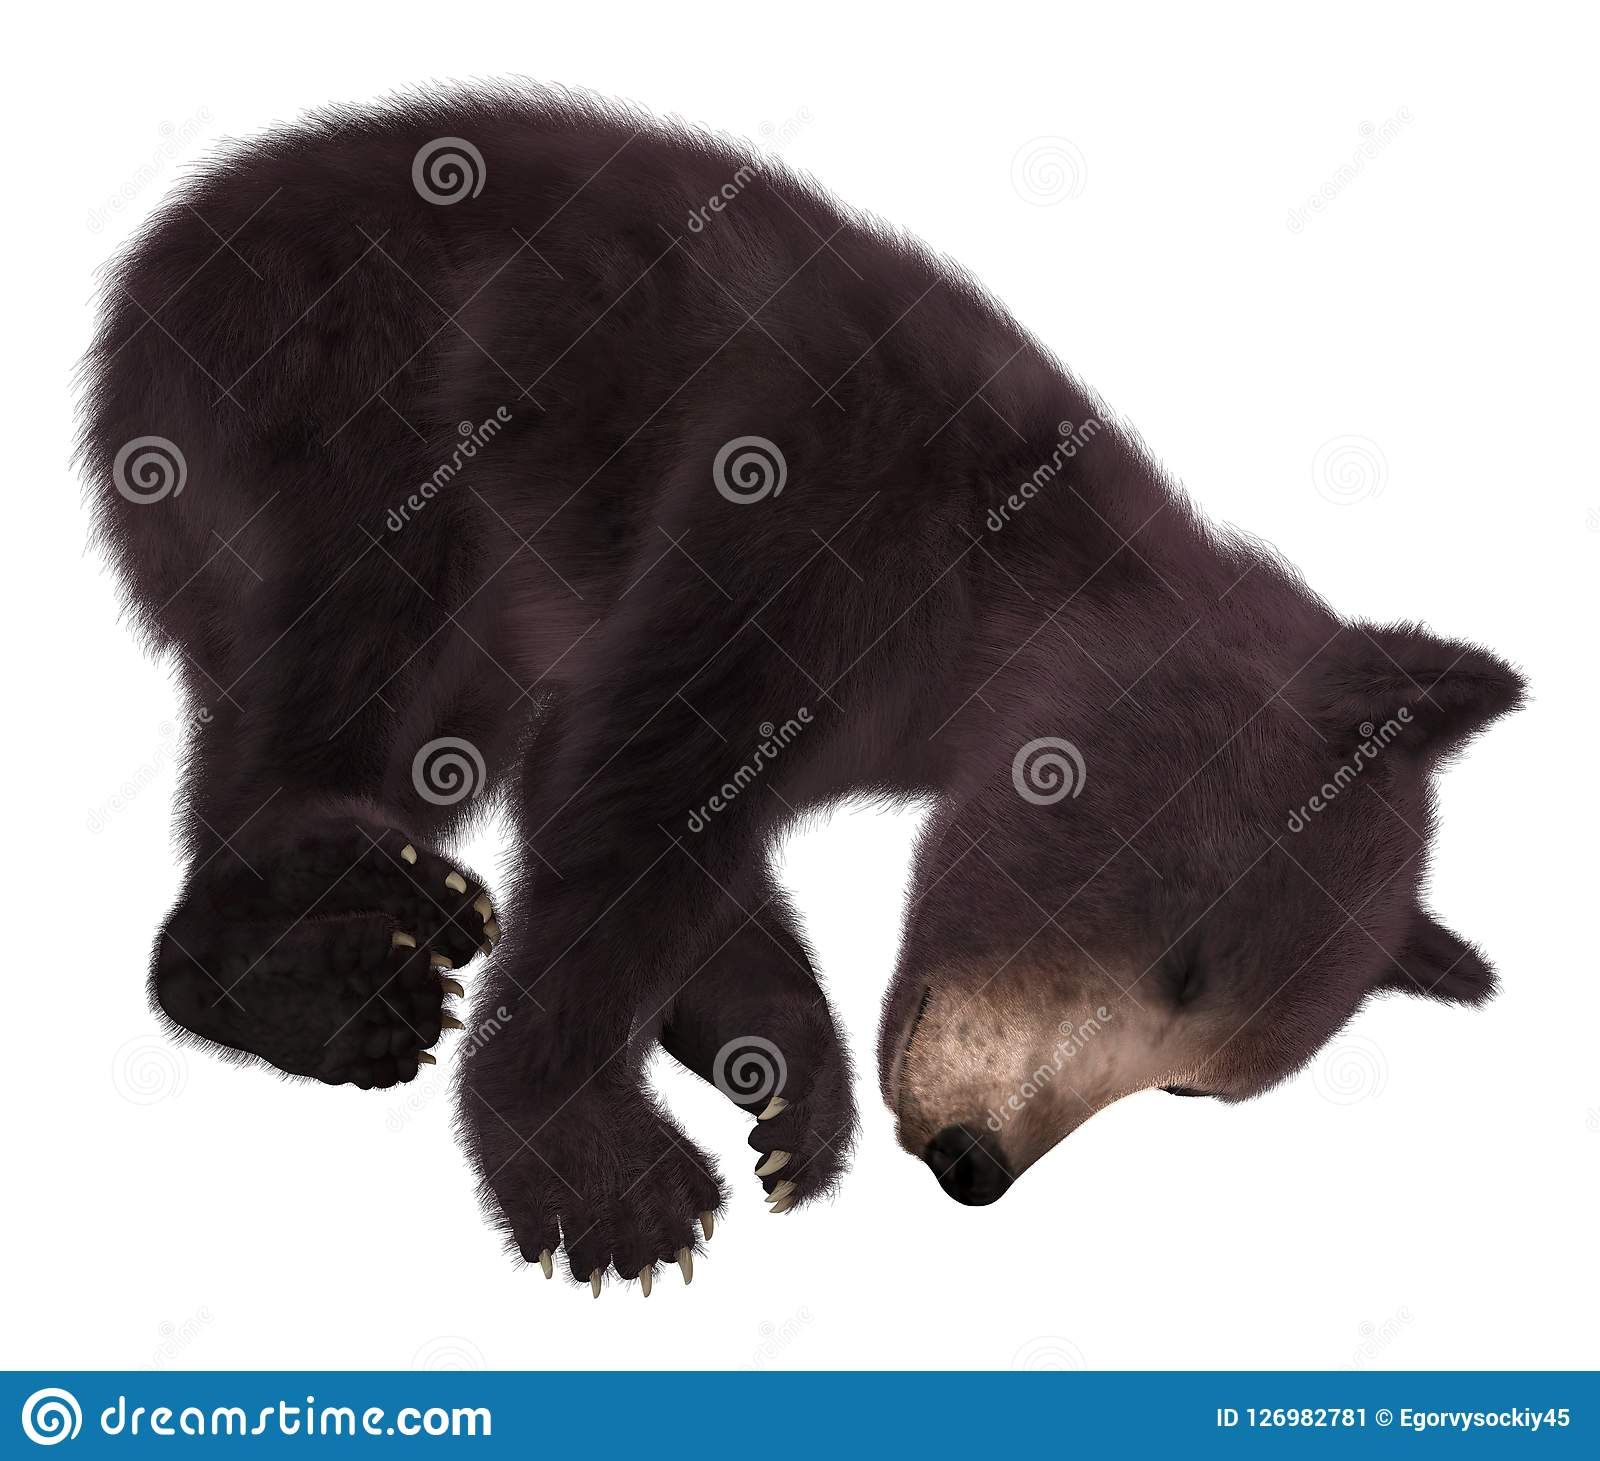 39812c0b94a 3D illustration black bear cub isolated on white background. More similar  stock illustrations. Black bear cub with clipping path and santa hat. ...